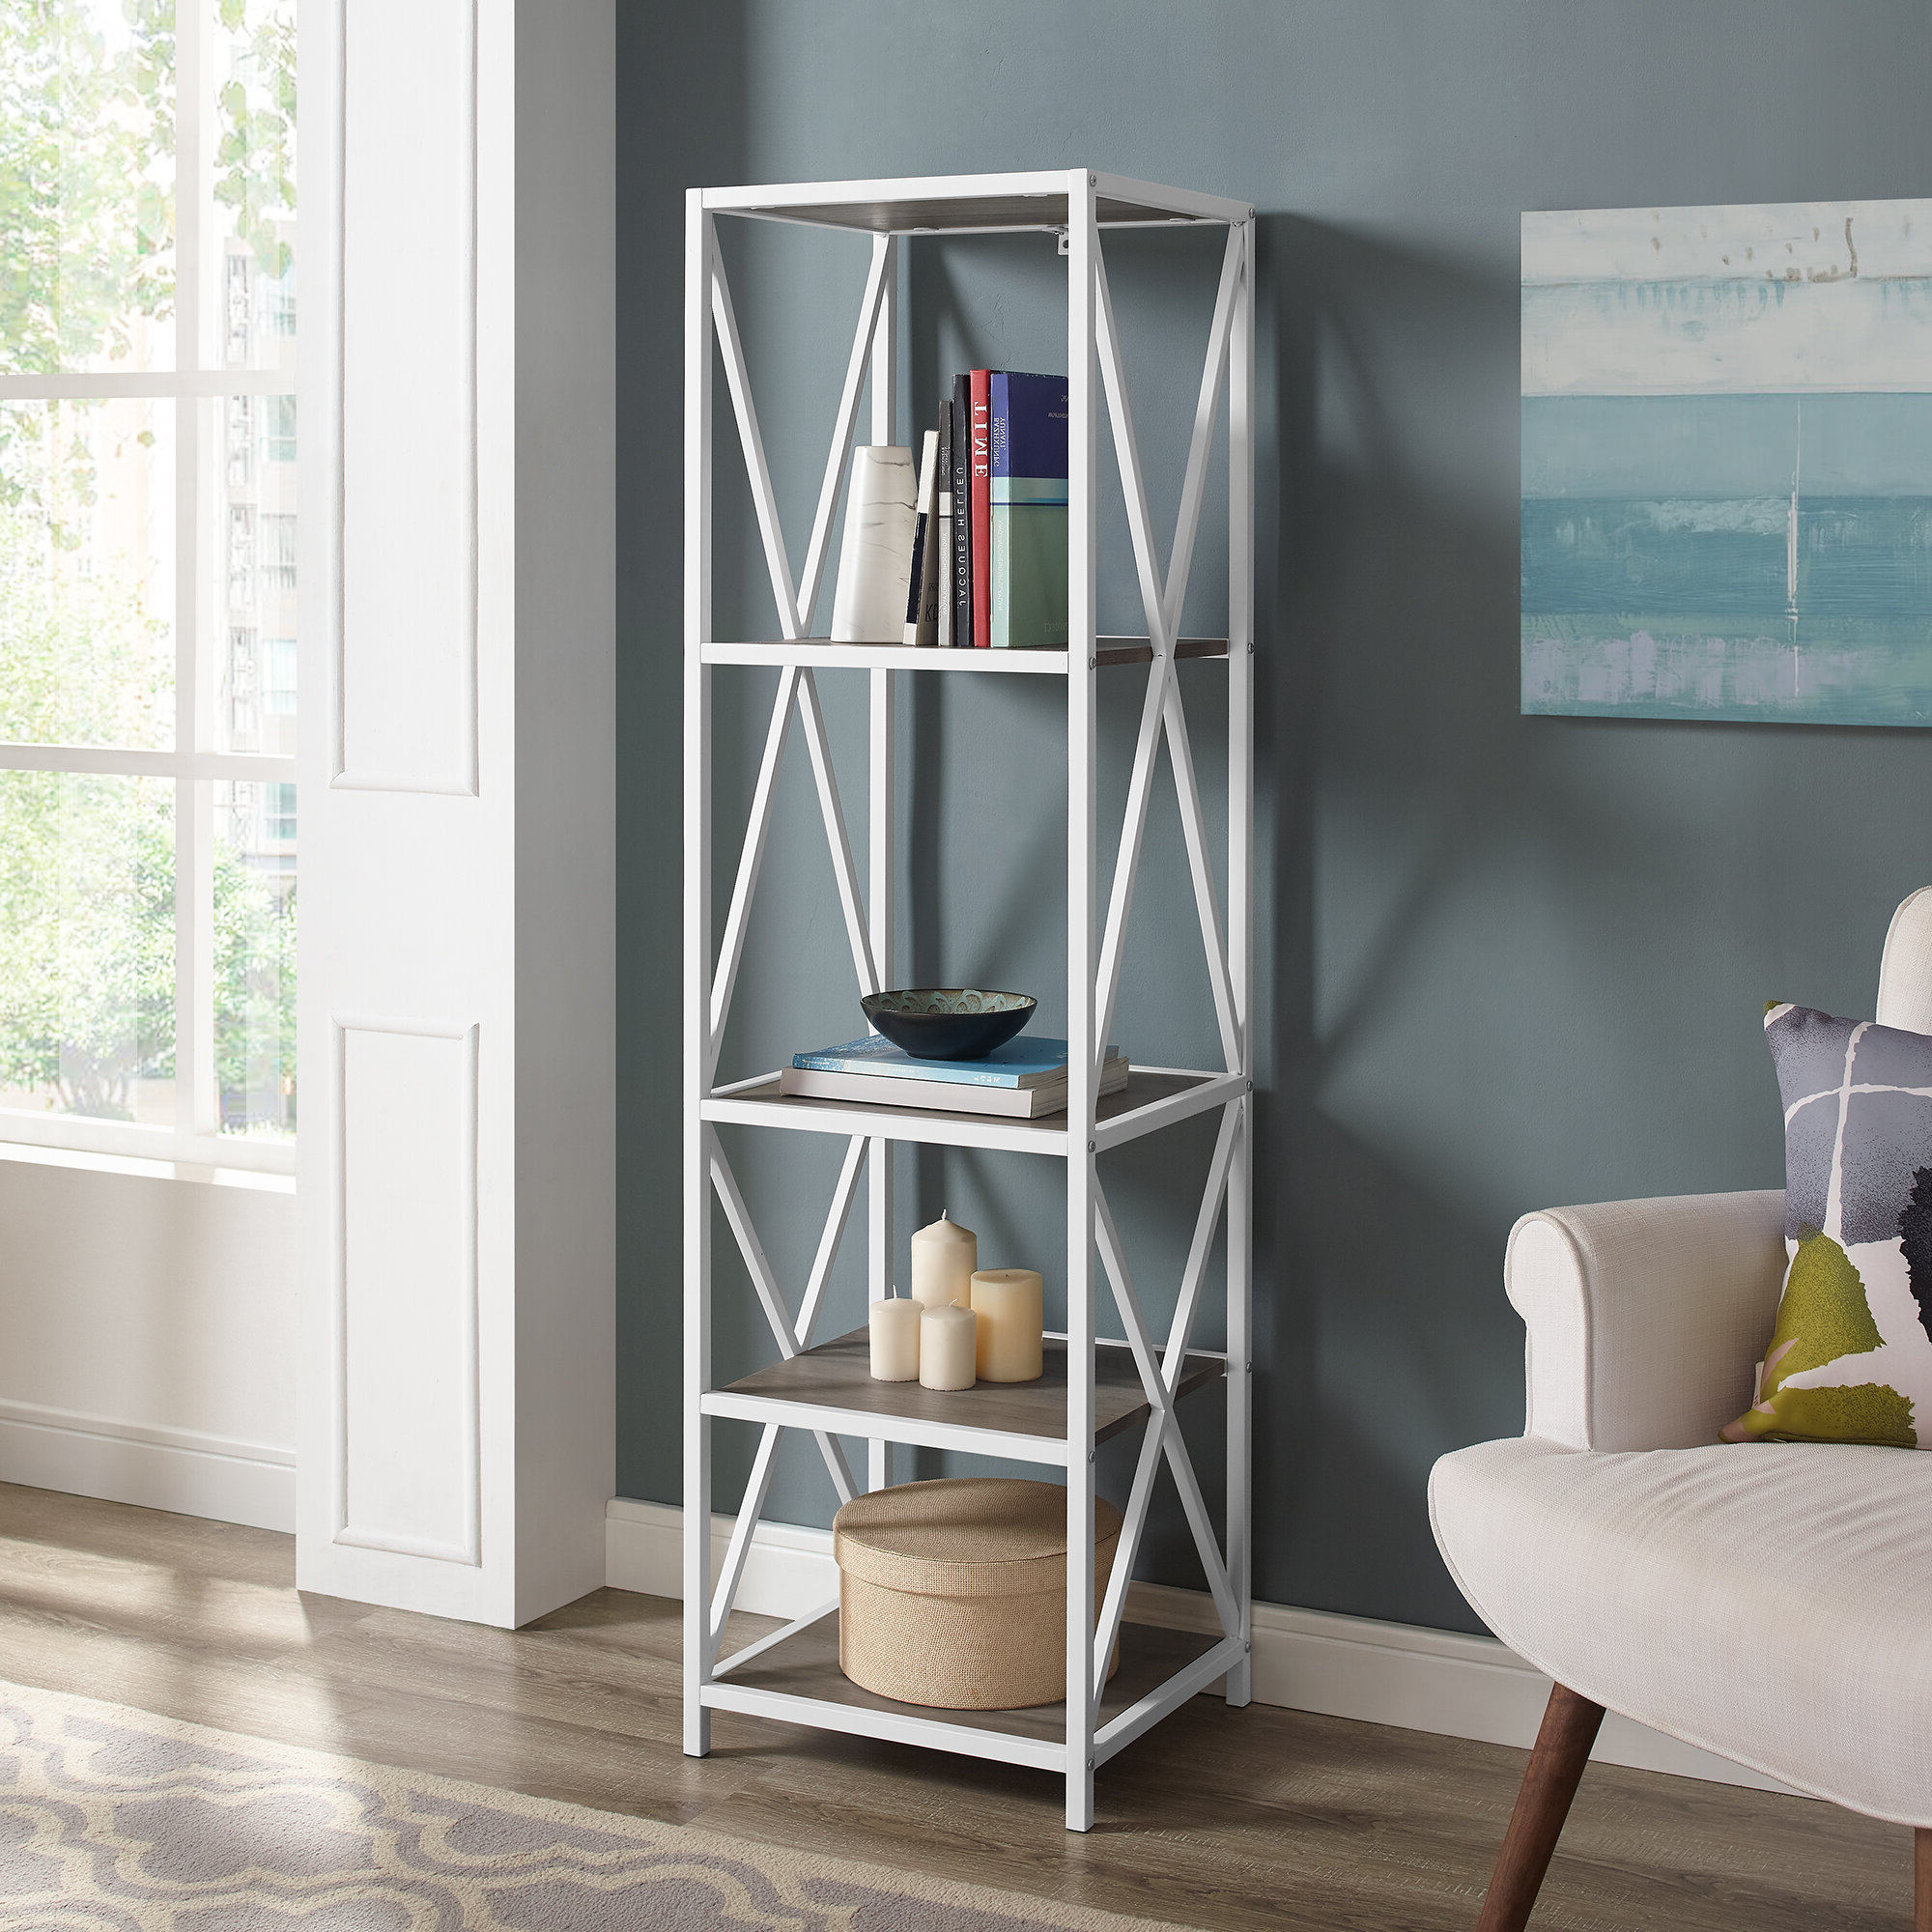 Augustus Etagere Bookcase Intended For Latest Augustus Etagere Bookcases (Gallery 6 of 20)